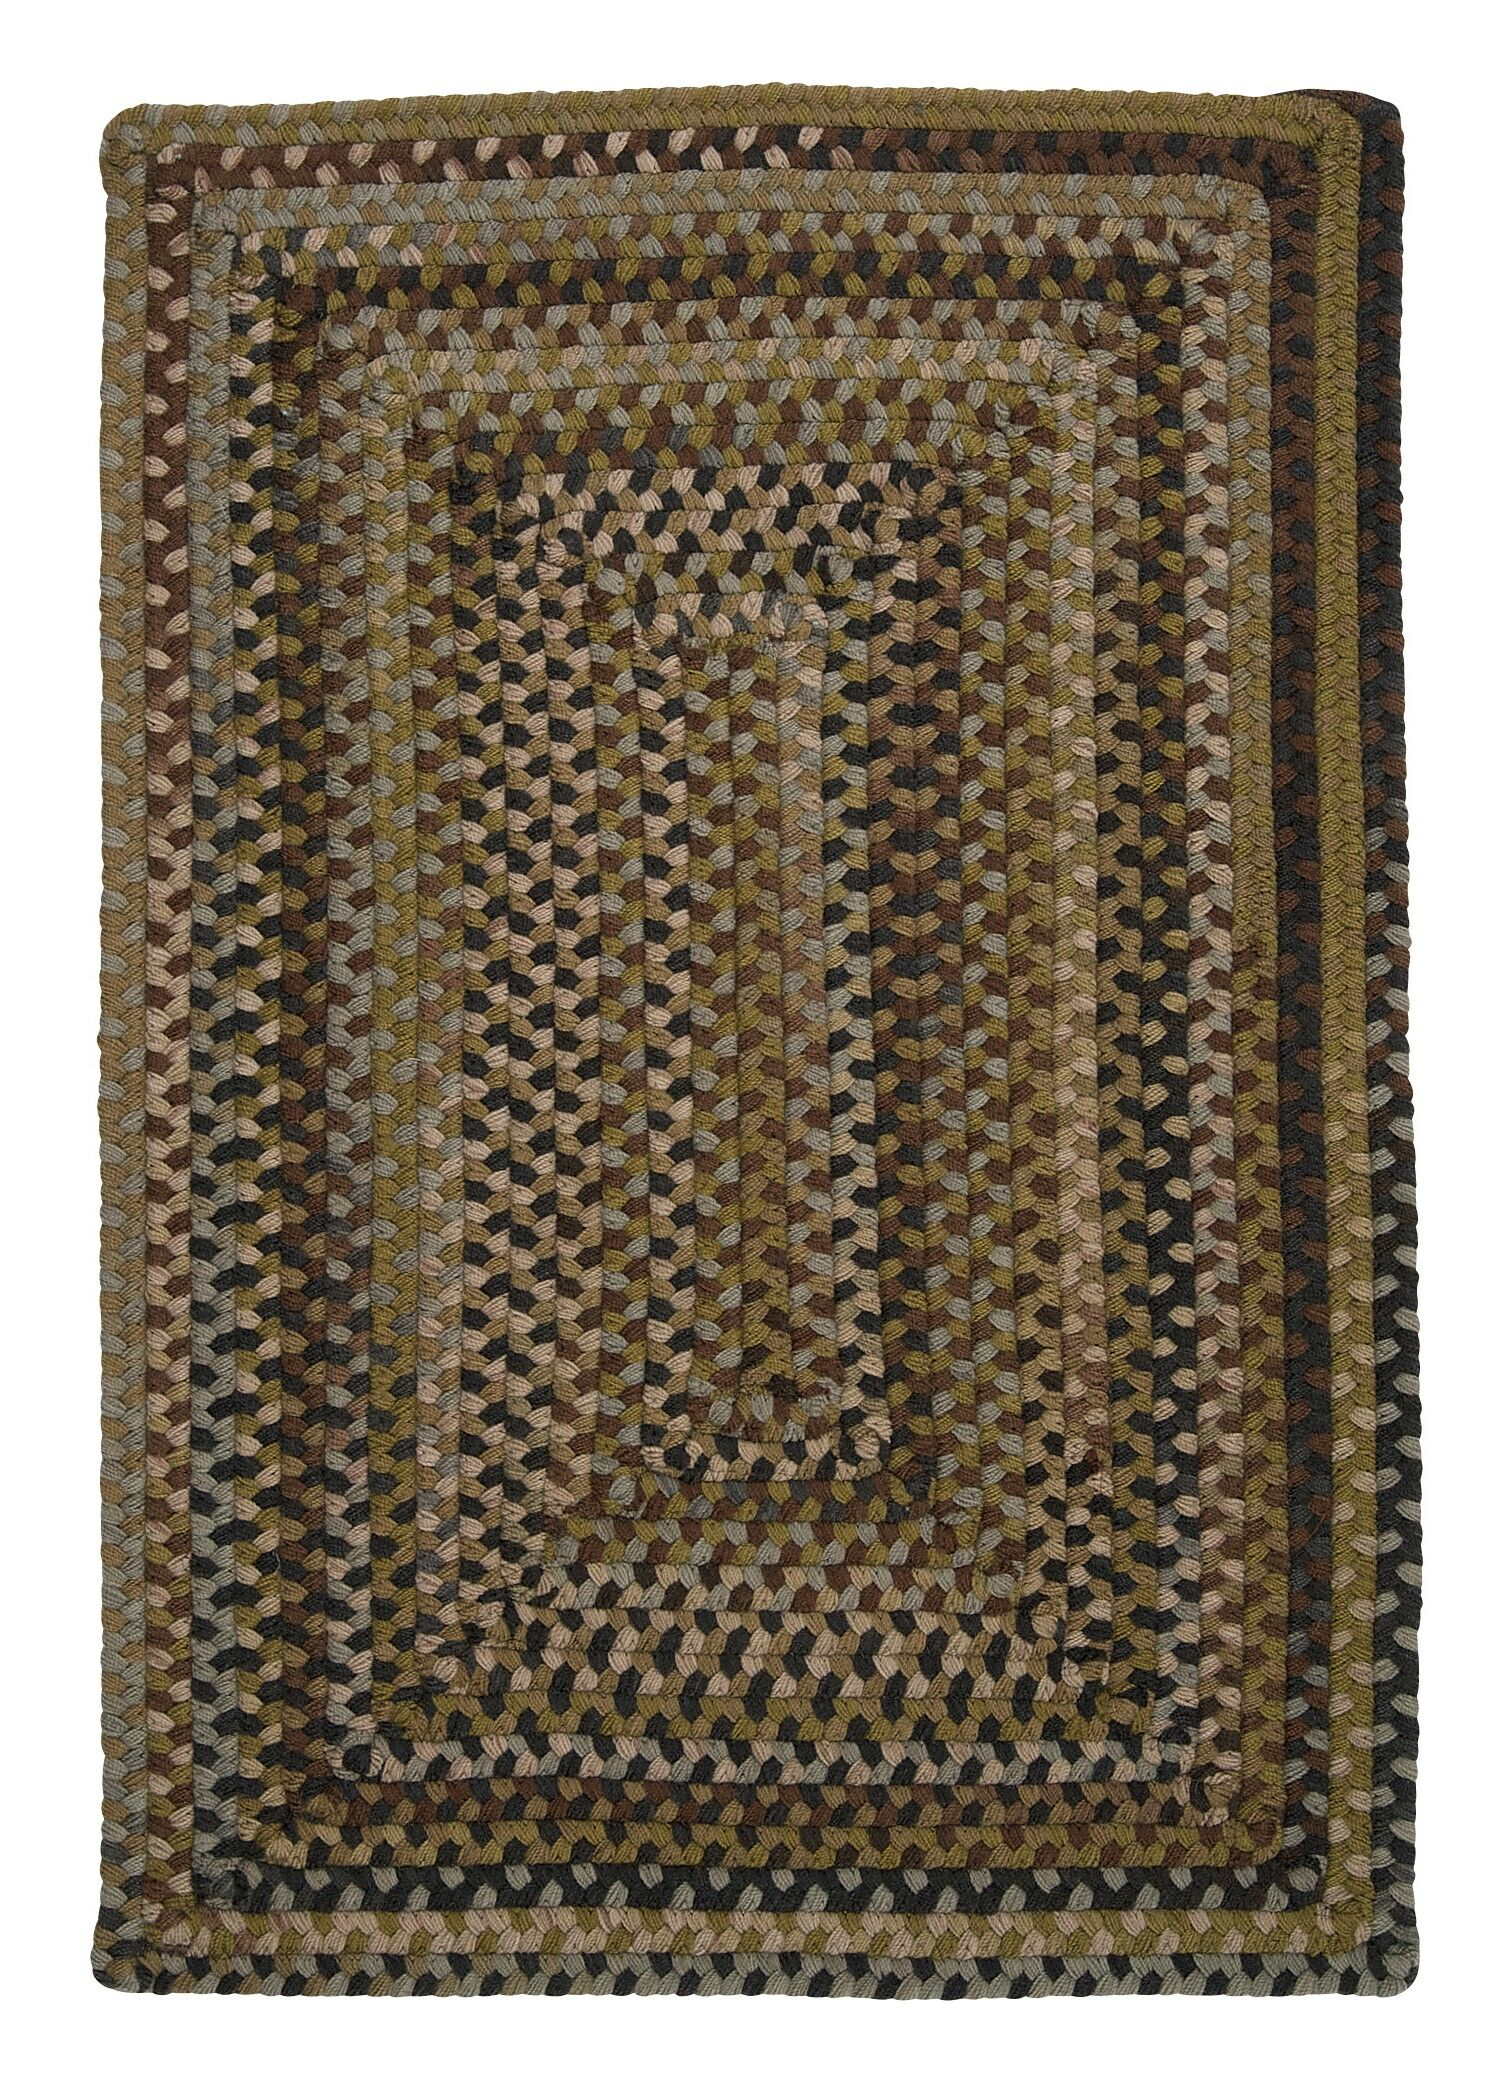 Ridgevale Grecian Green Area Rug Rug Size: Rectangle 7' x 9'